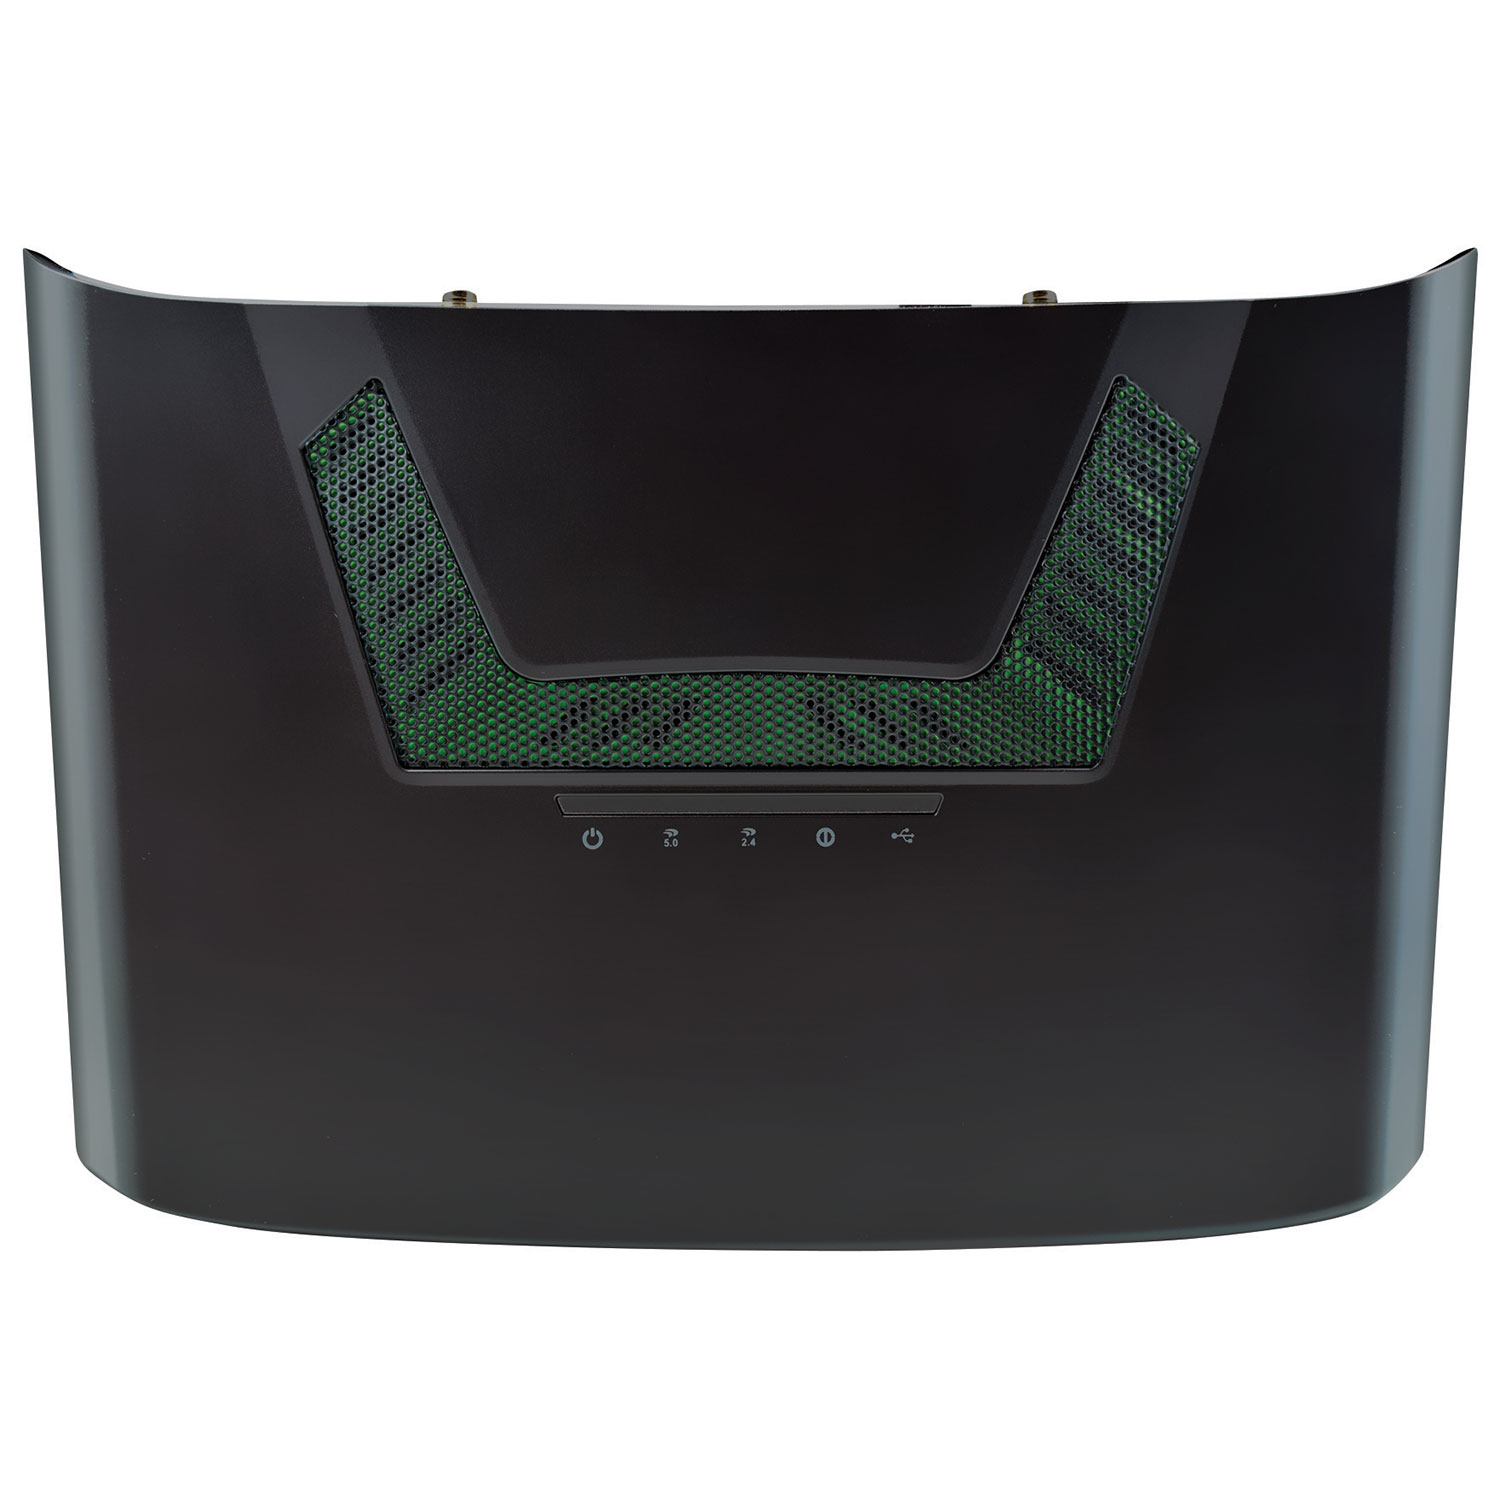 R6020 wifi routers networking home netgear - Amped Wireless Titan Wireless Ac1900 Dual Band Router Rta1900 Ca Wireless Routers Best Buy Canada